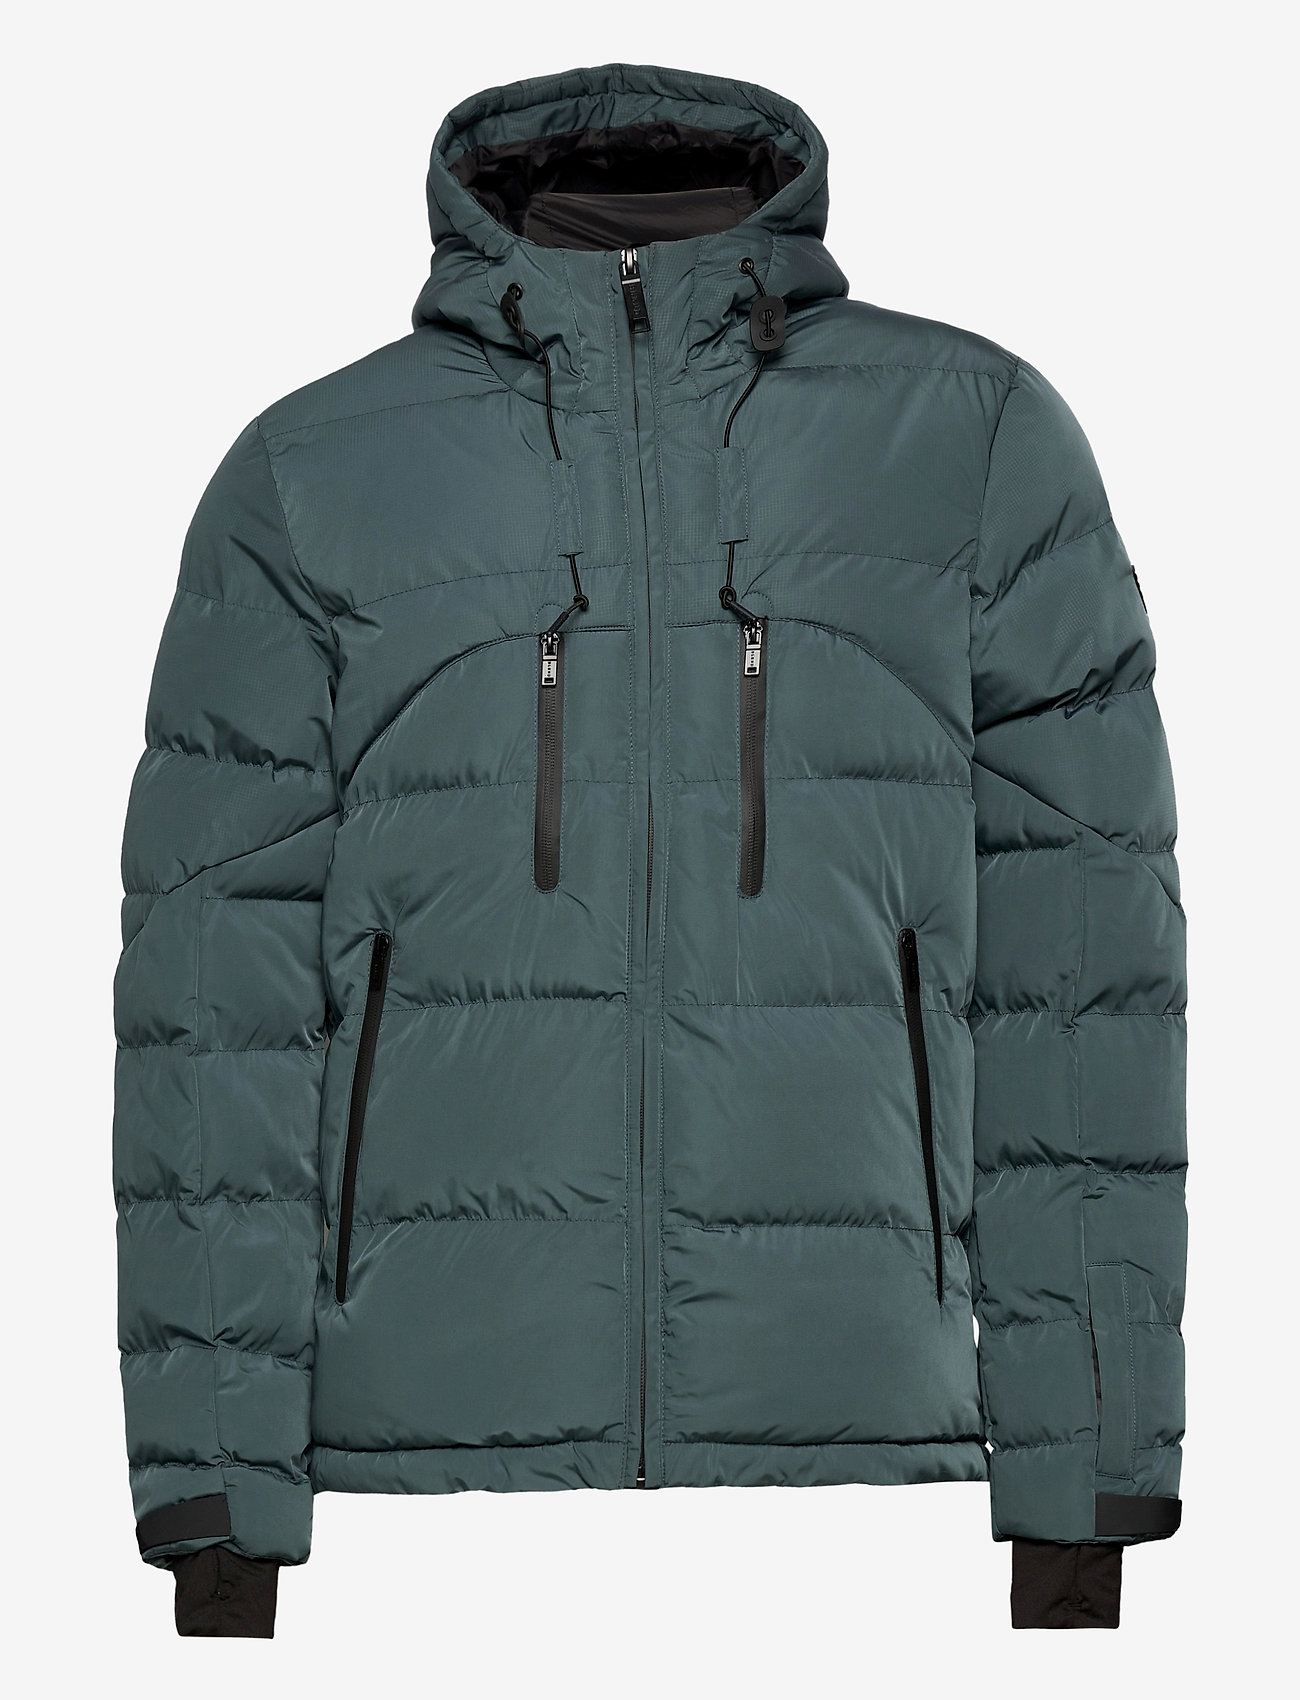 Blend - Outerwear - padded jackets - dark slate - 1